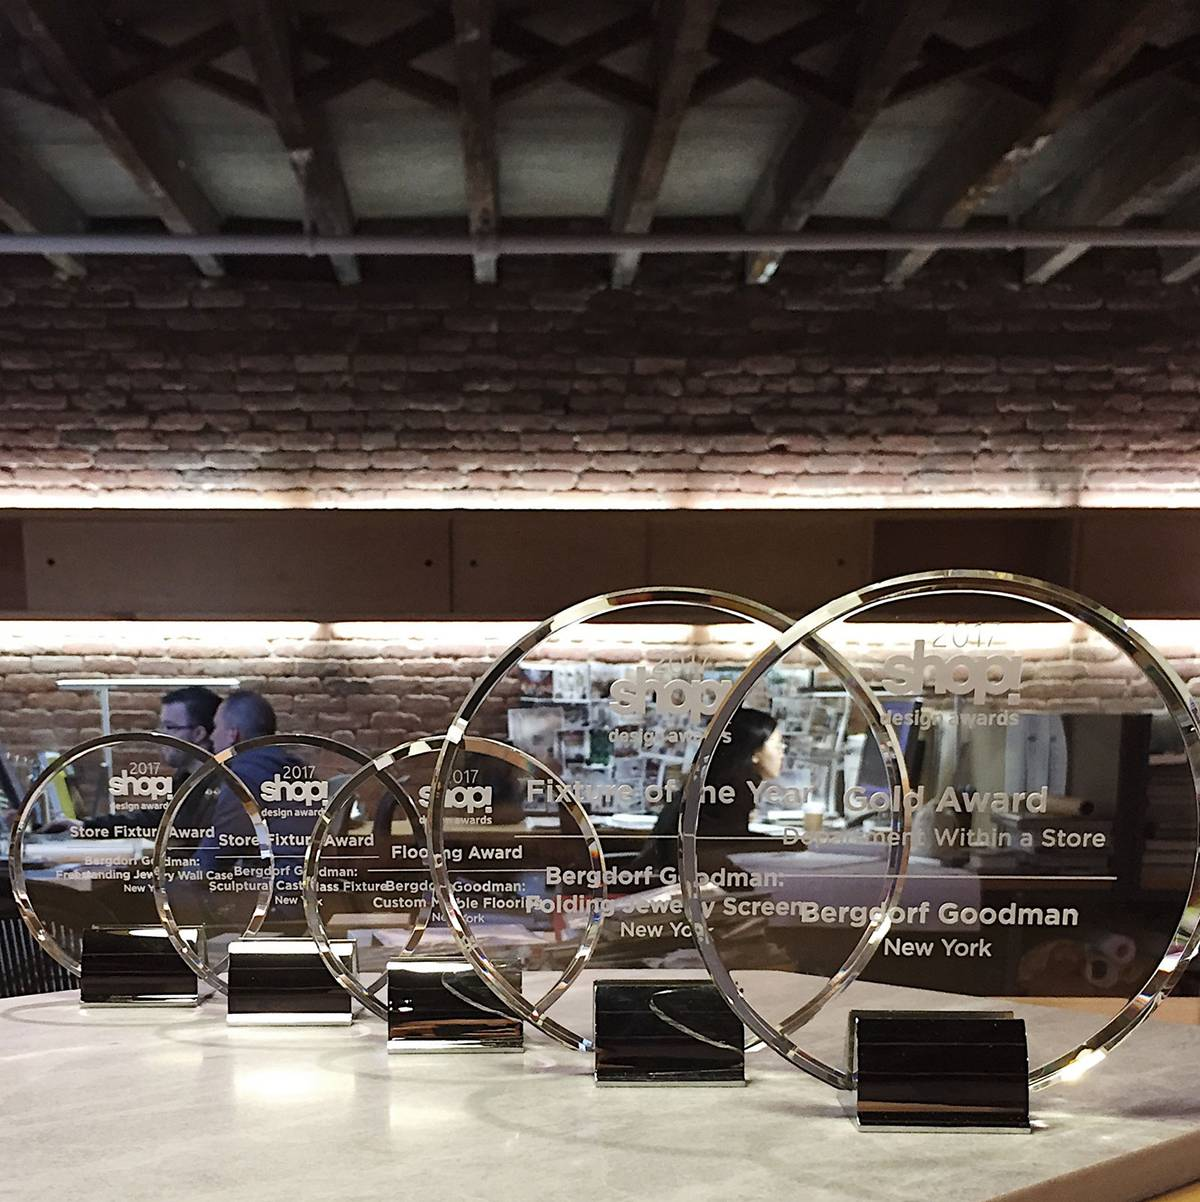 Shop! Design Awards, Store Fixture of the Year - Architect: Neumann & Rudy